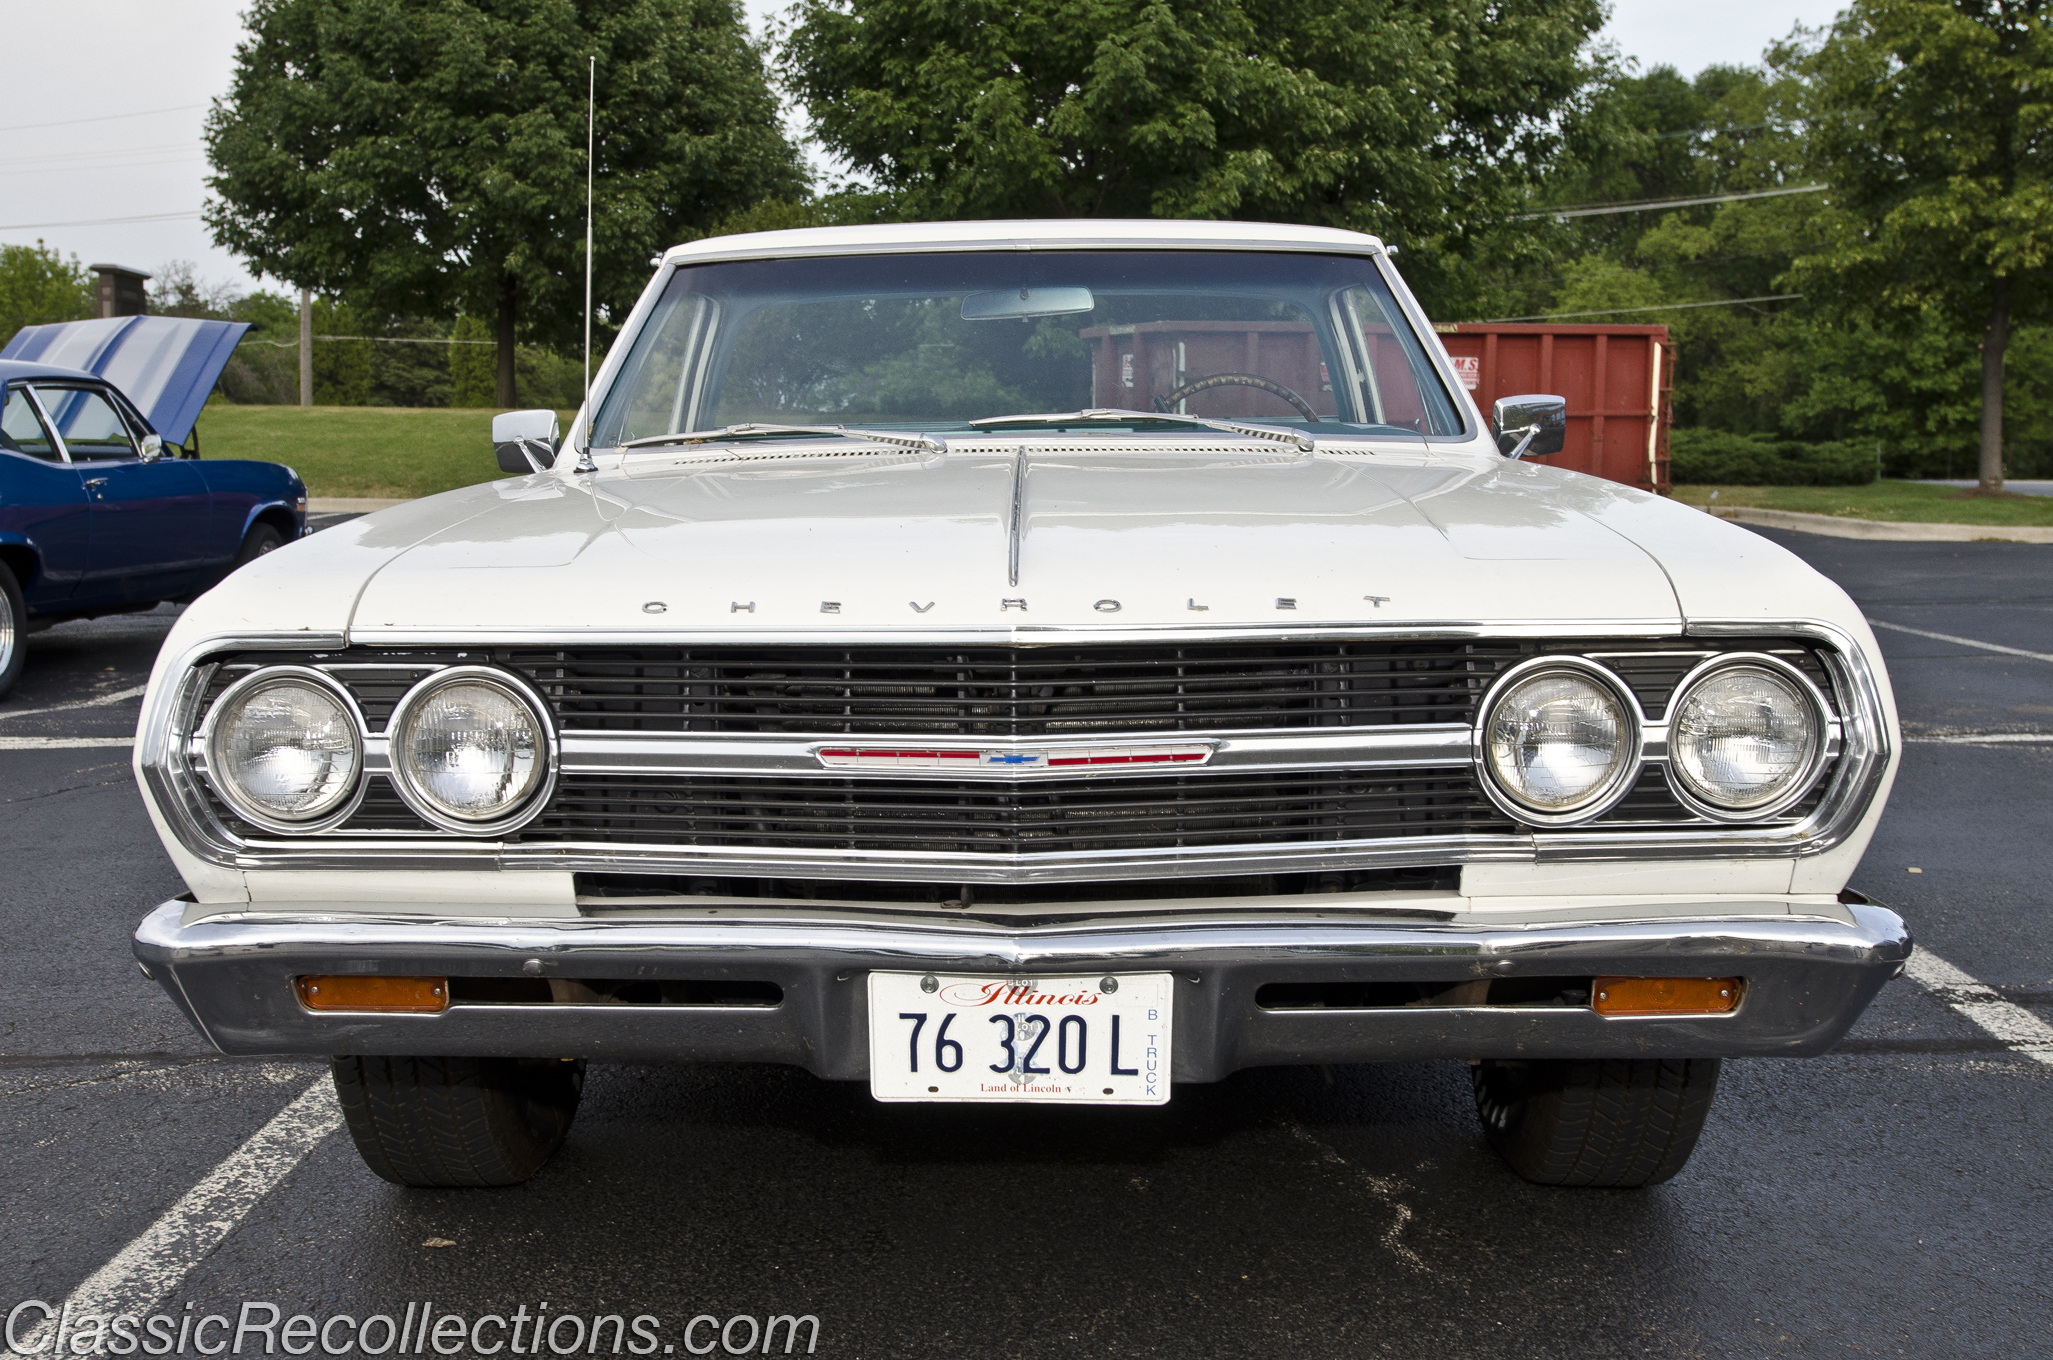 Feature 1965 Chevrolet El Camino Classic Recollections 1954 Chevy Under The Hood Of This Is Factory 327ci V8